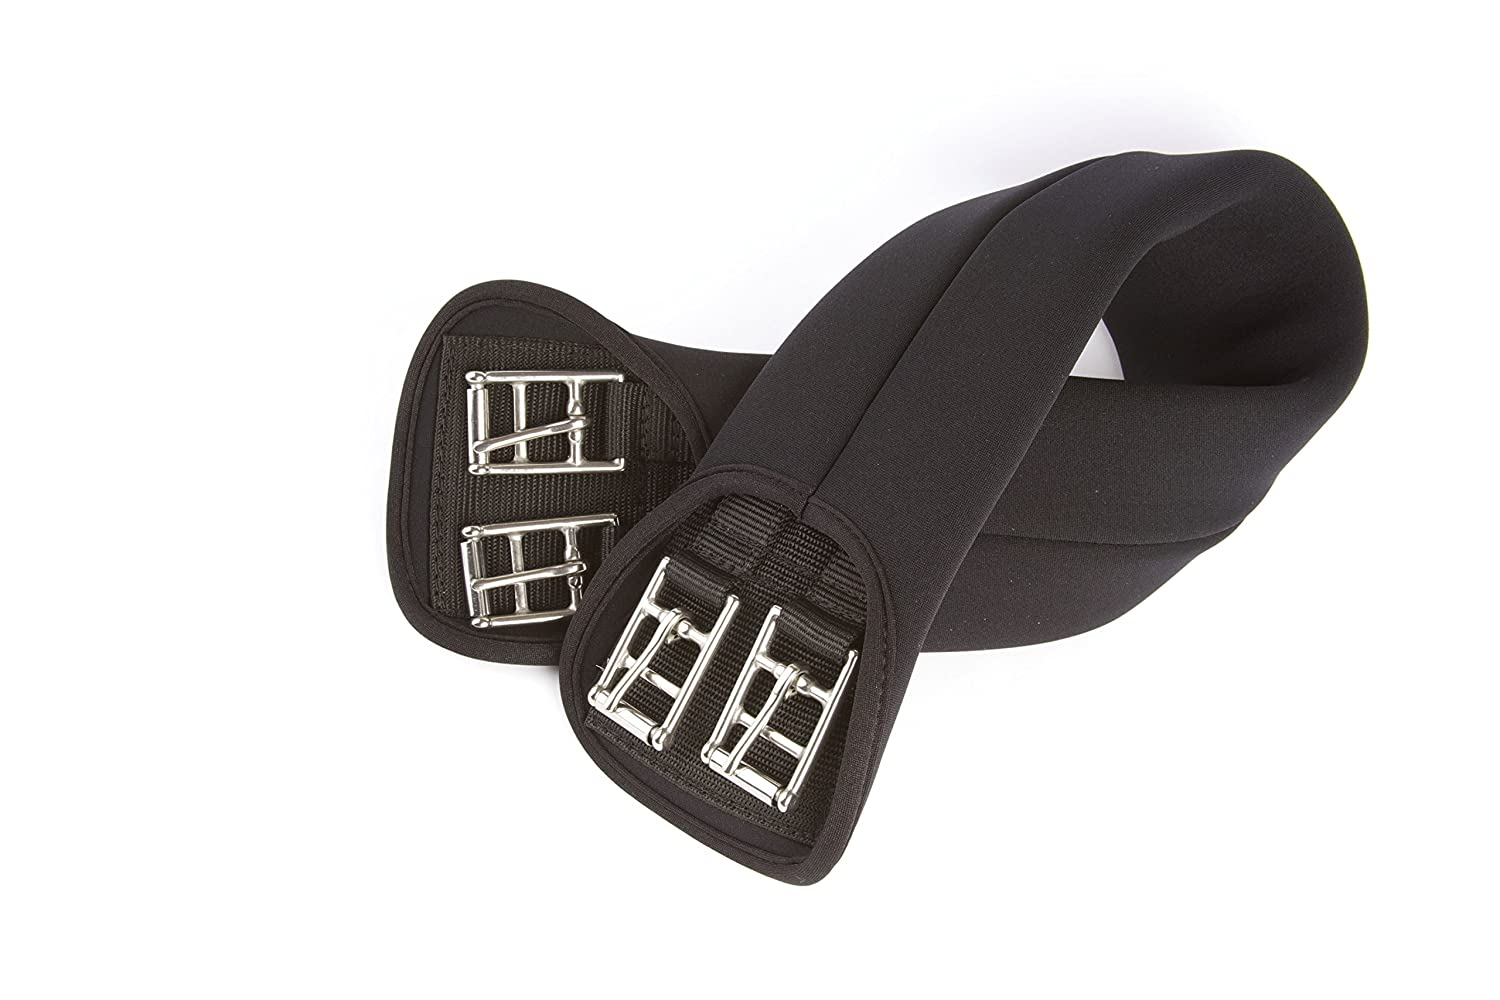 HyCOMFORT Neoprene Dressage Girth - Provides a Superb Level Of Comfort & Support - Available With Elsticated Ends As Well - Black William Hunter Equestrian